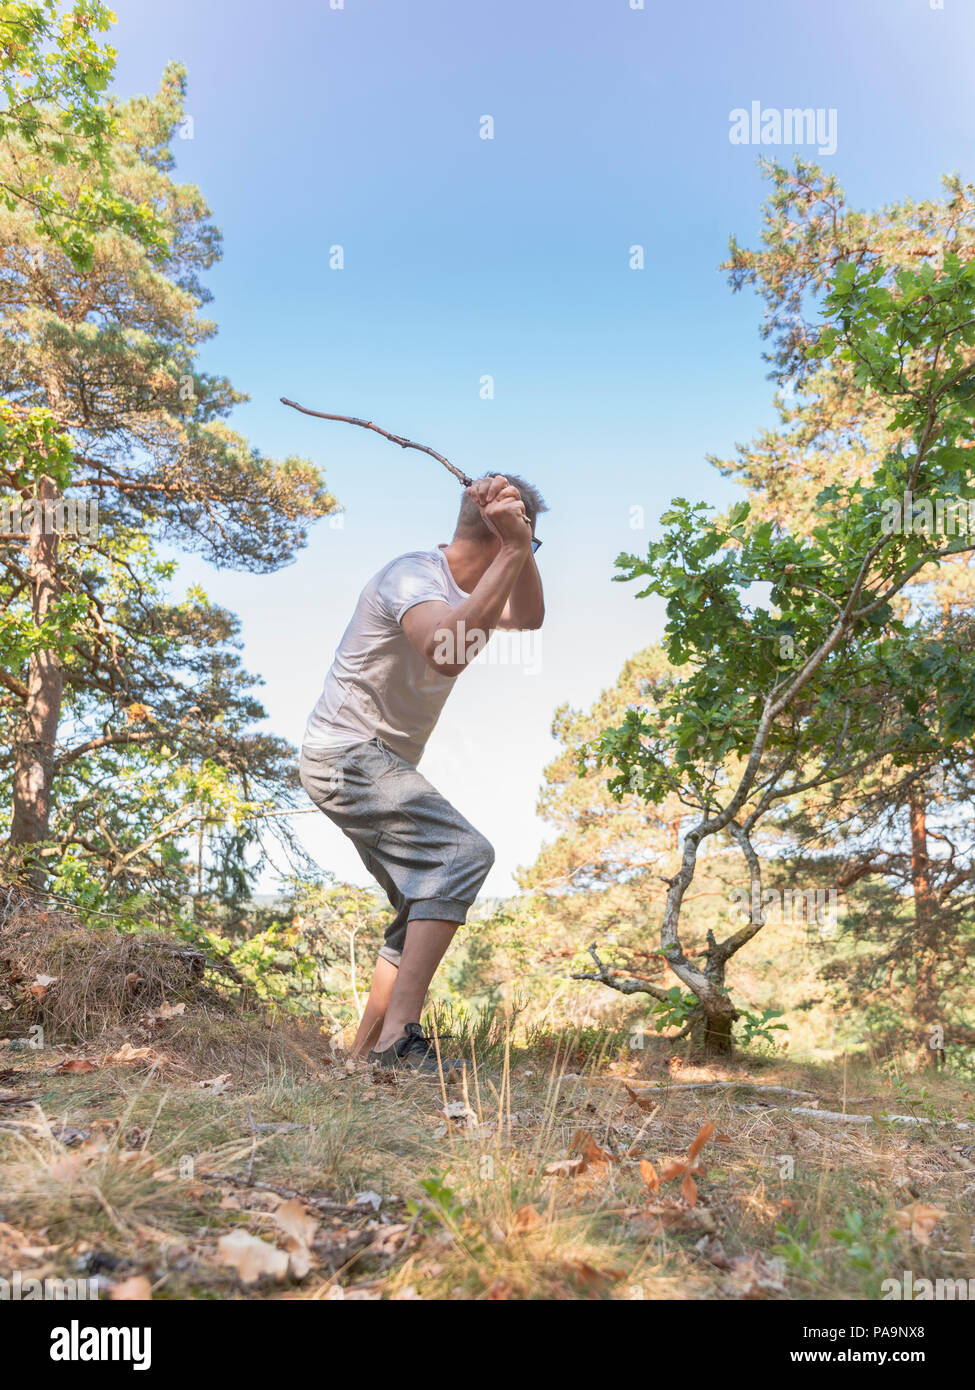 Adult caucasian man batting with wooden stick through clearing in forest - Stock Image